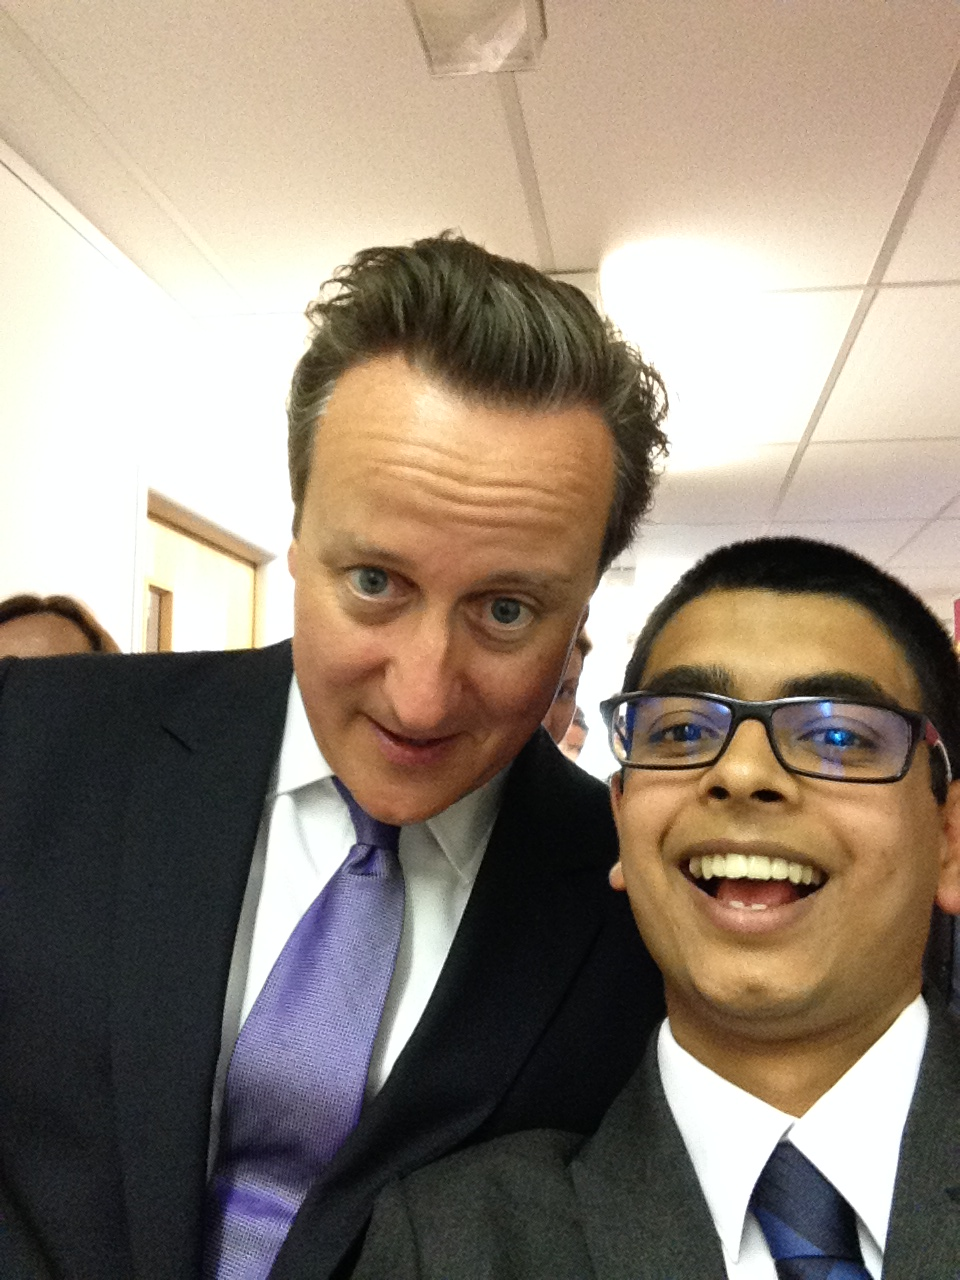 Selfie with PM David Cameron.JPG